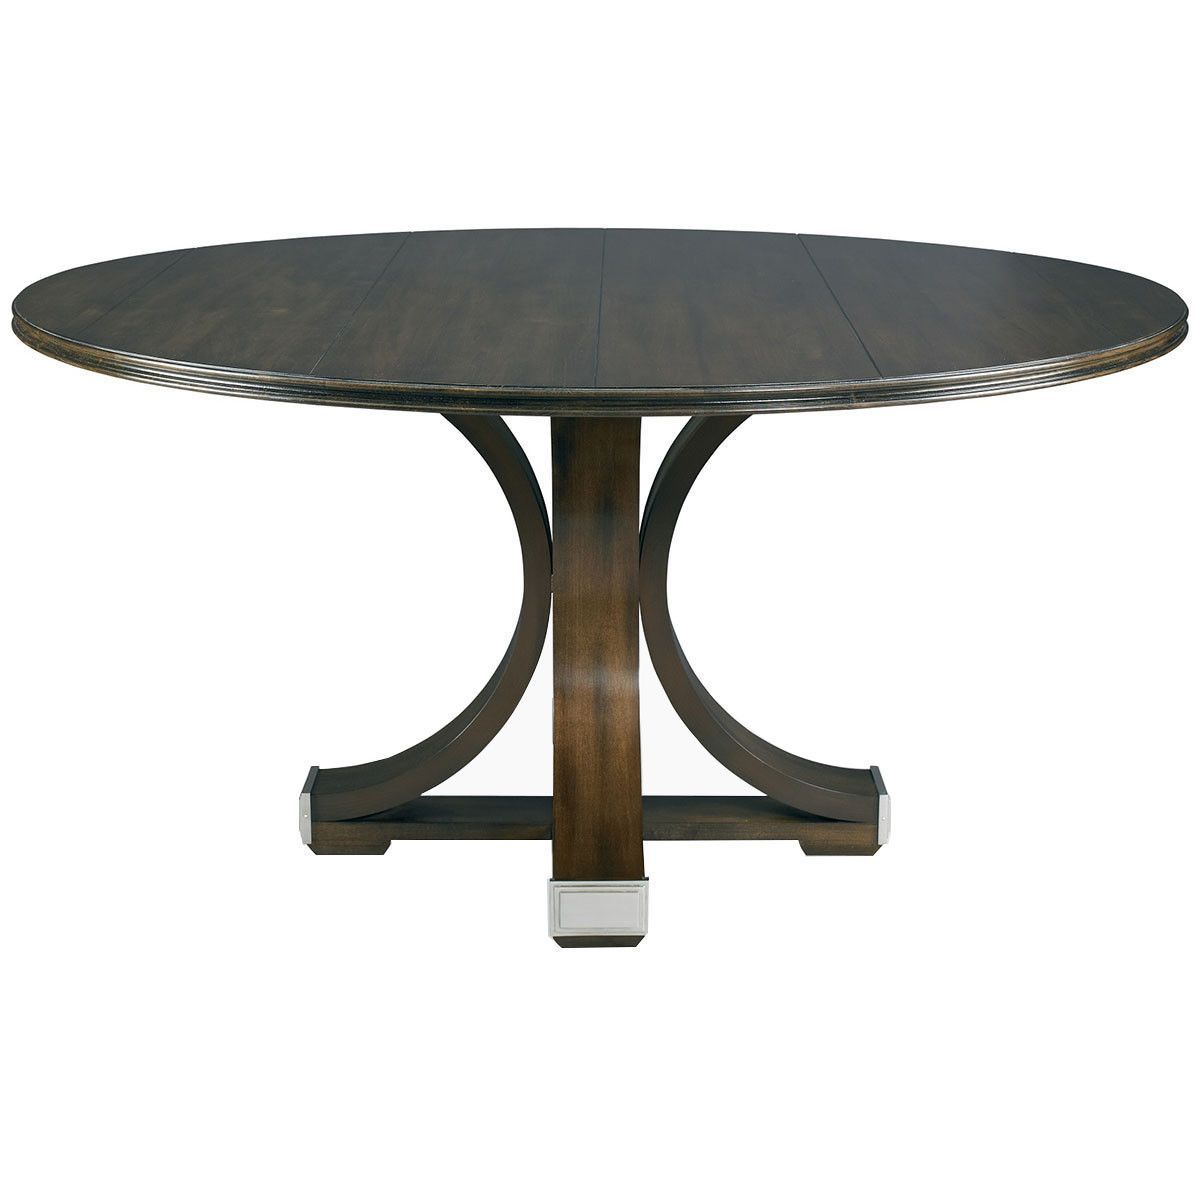 striking black bases table stone top dining floor chairs pedestal attractive dinning textured design stev base glass with room and ideas oval